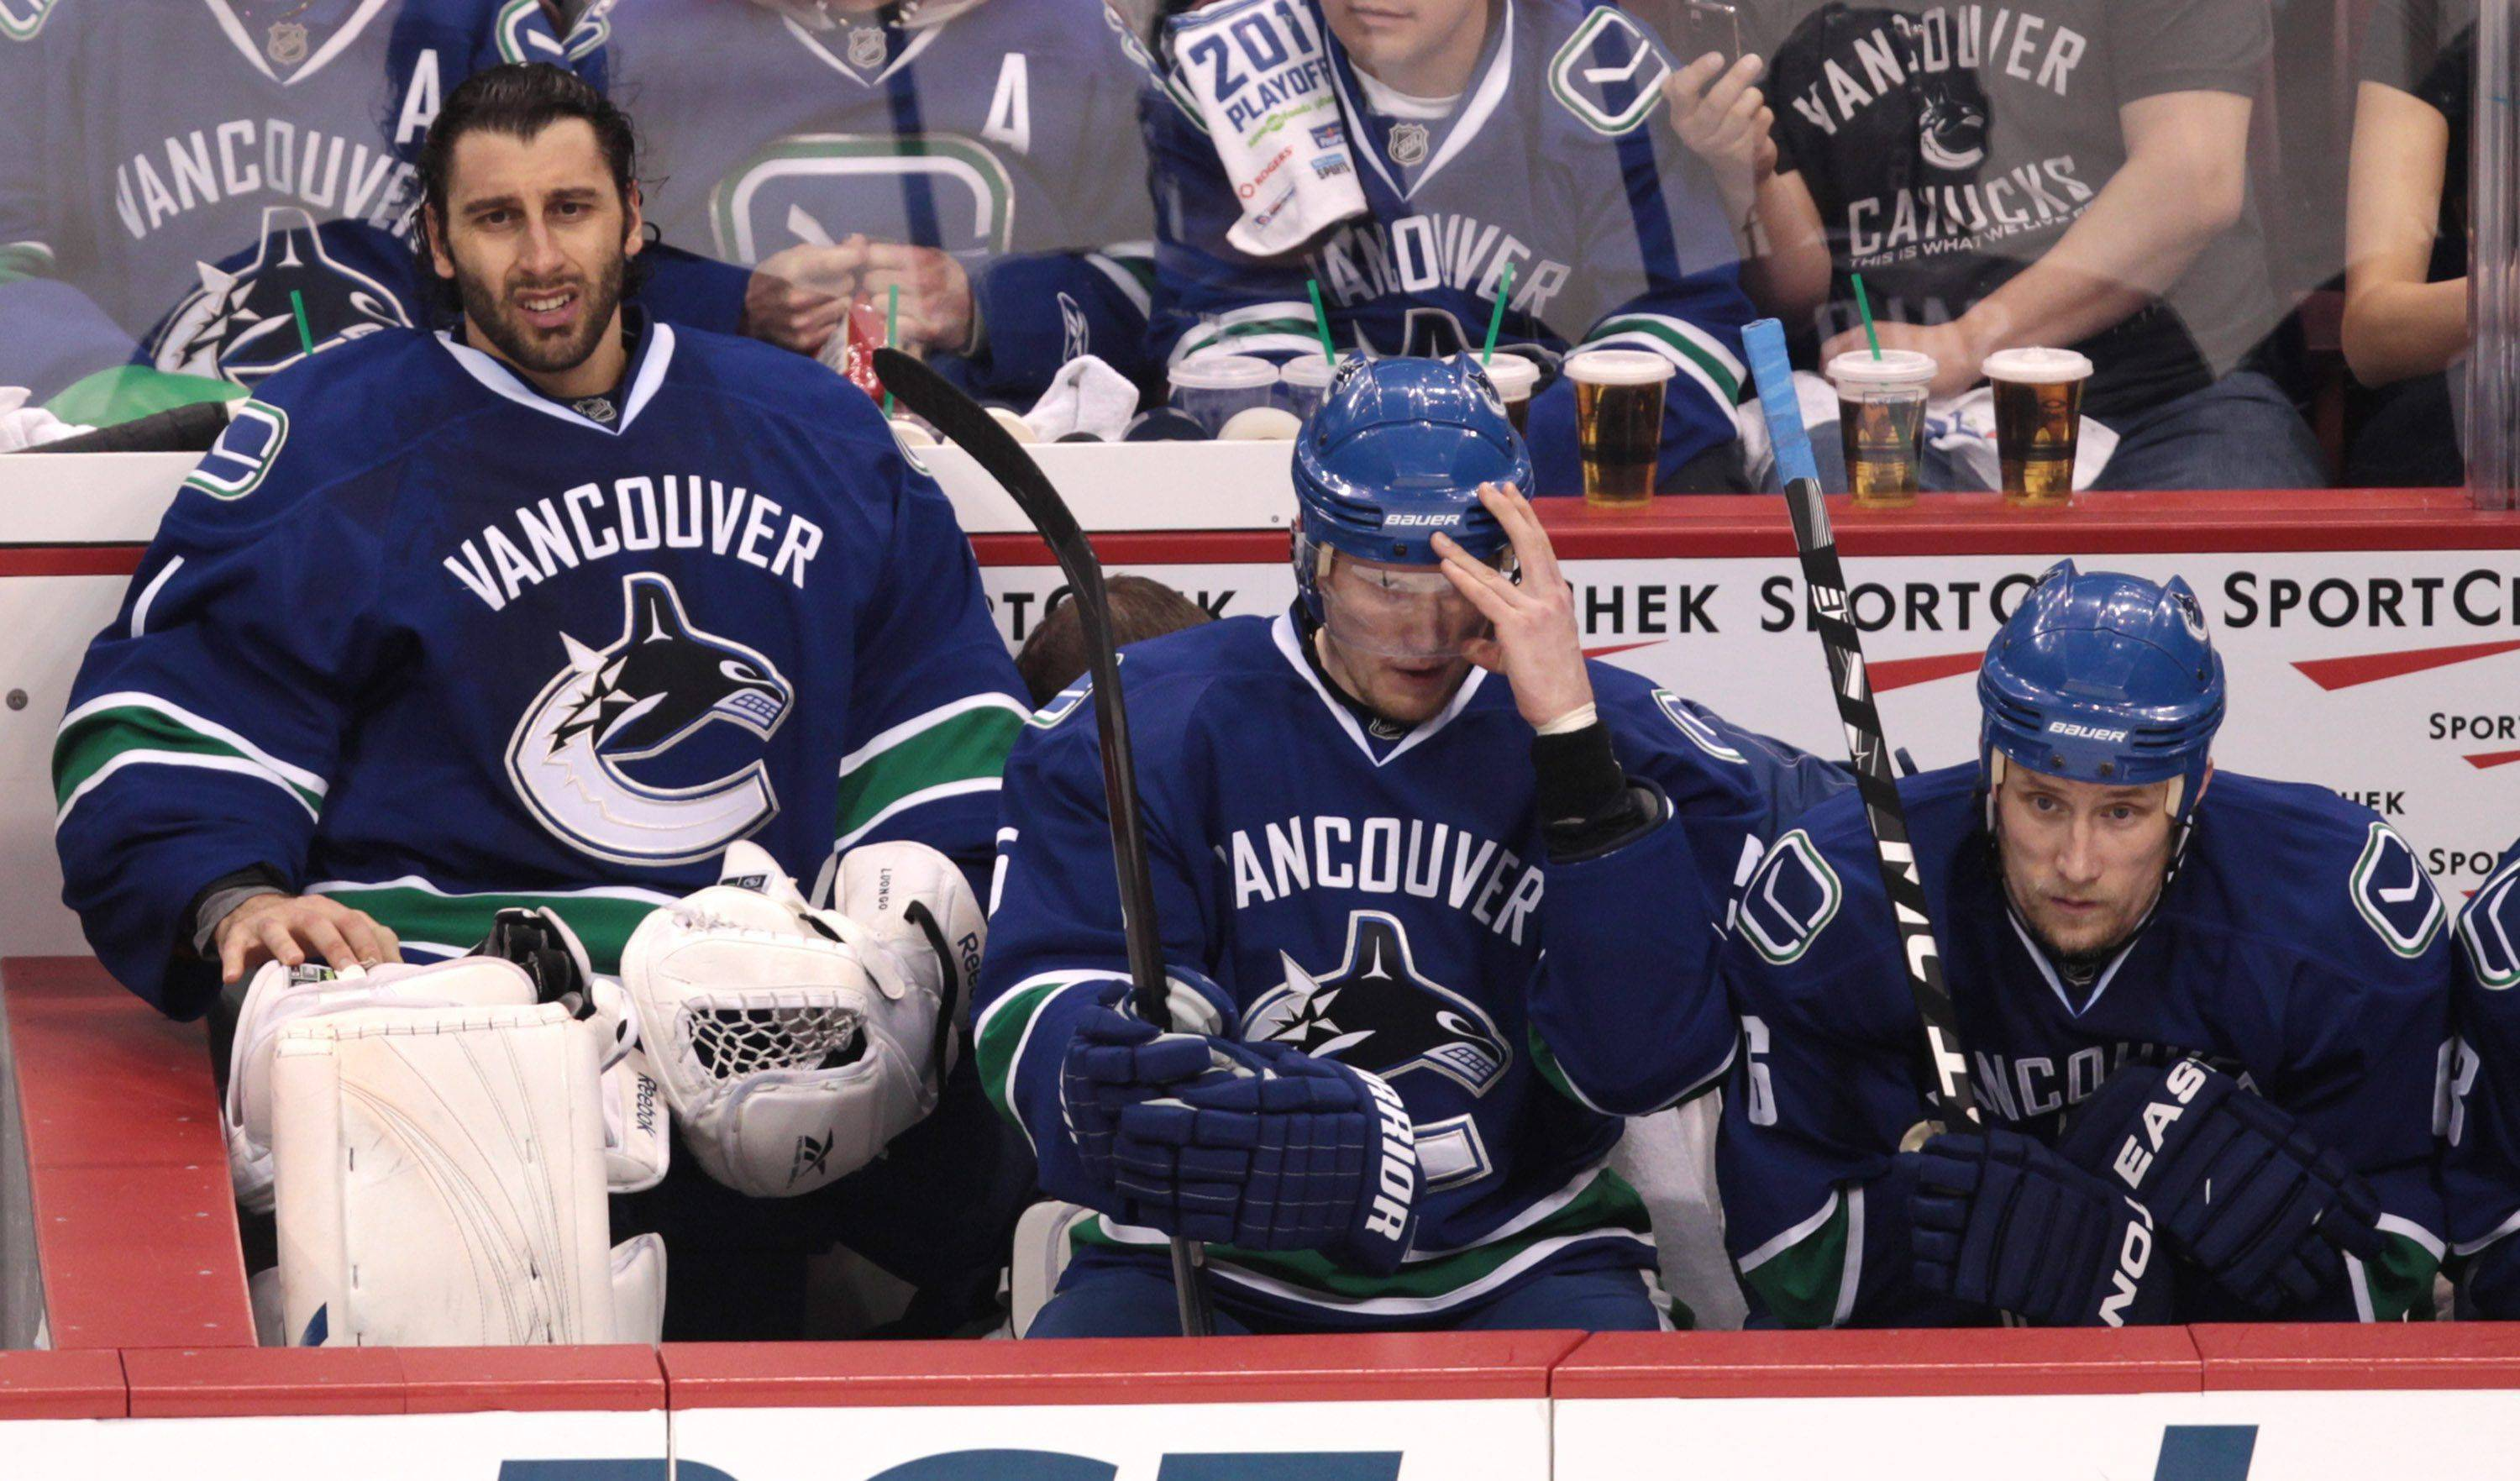 Vancouver Canucks goalie Roberto Luongo, left, sits on the bench after being replaced by backup goalie Cory Schneider, as Christian Ehrhoff, center, and Sami Salo, sit next to him during the second period.